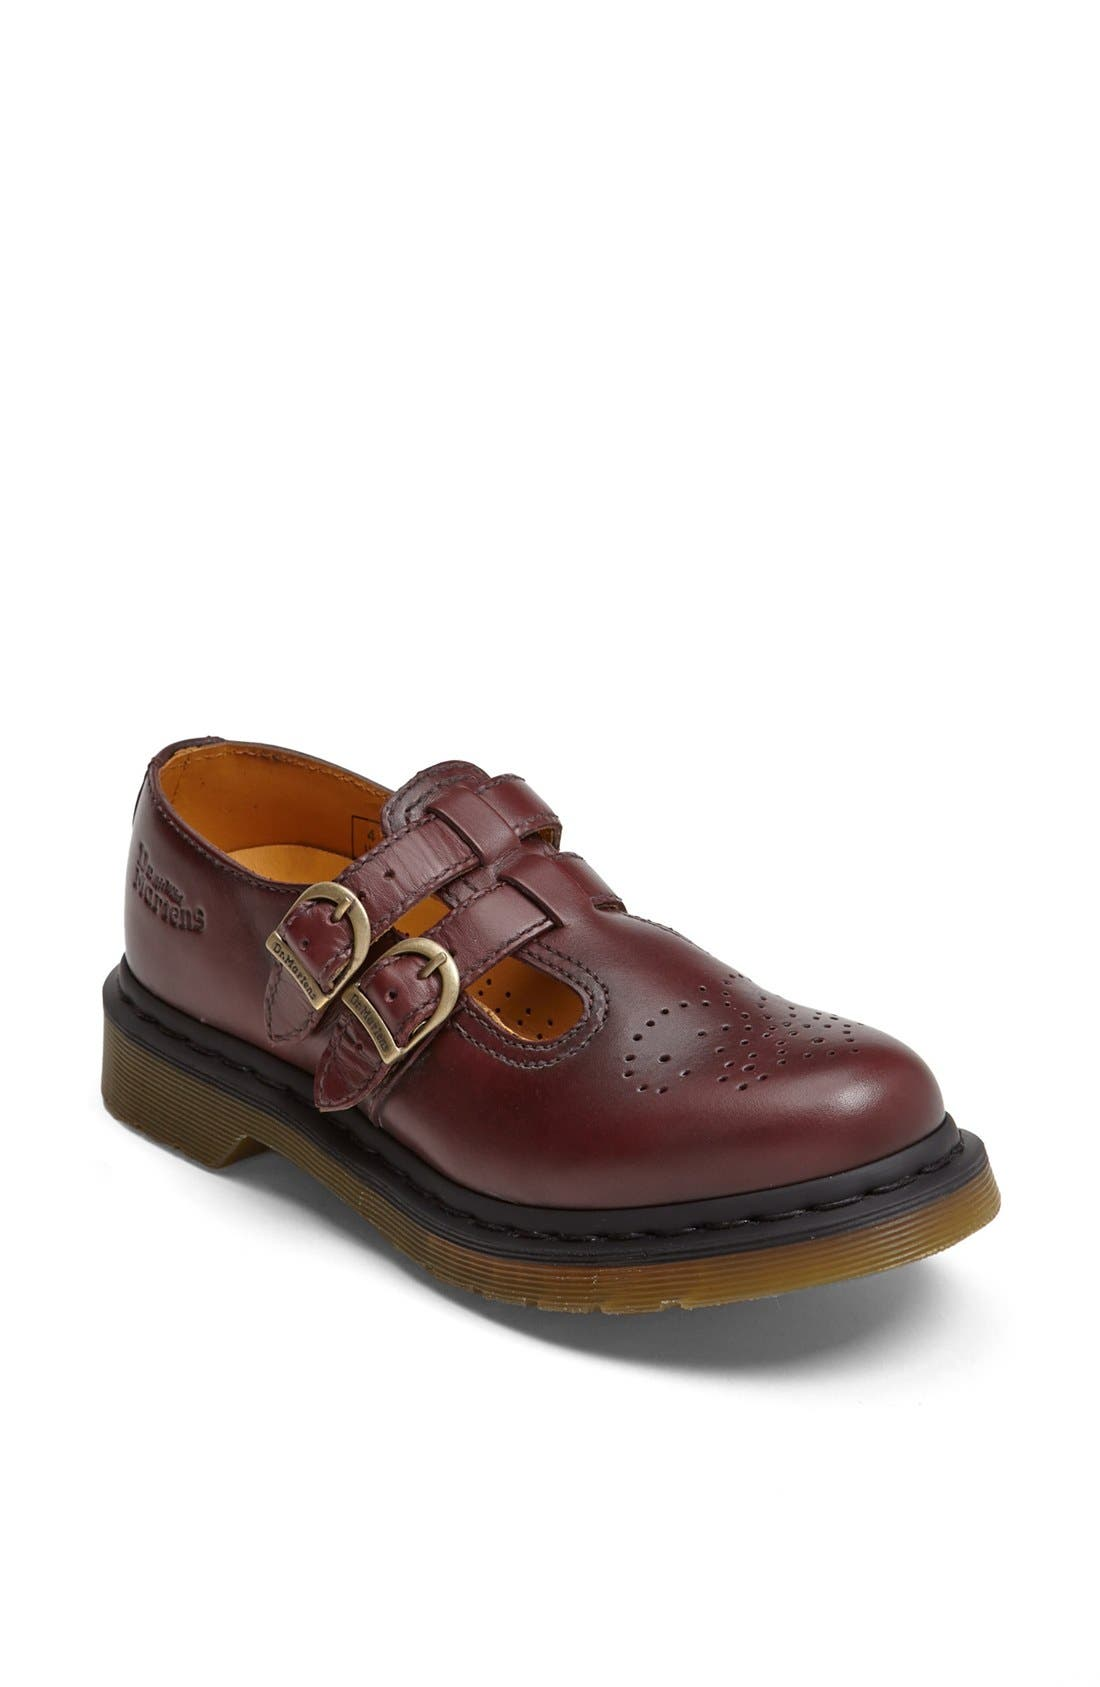 Main Image - Dr. Martens '8065' Mary Jane